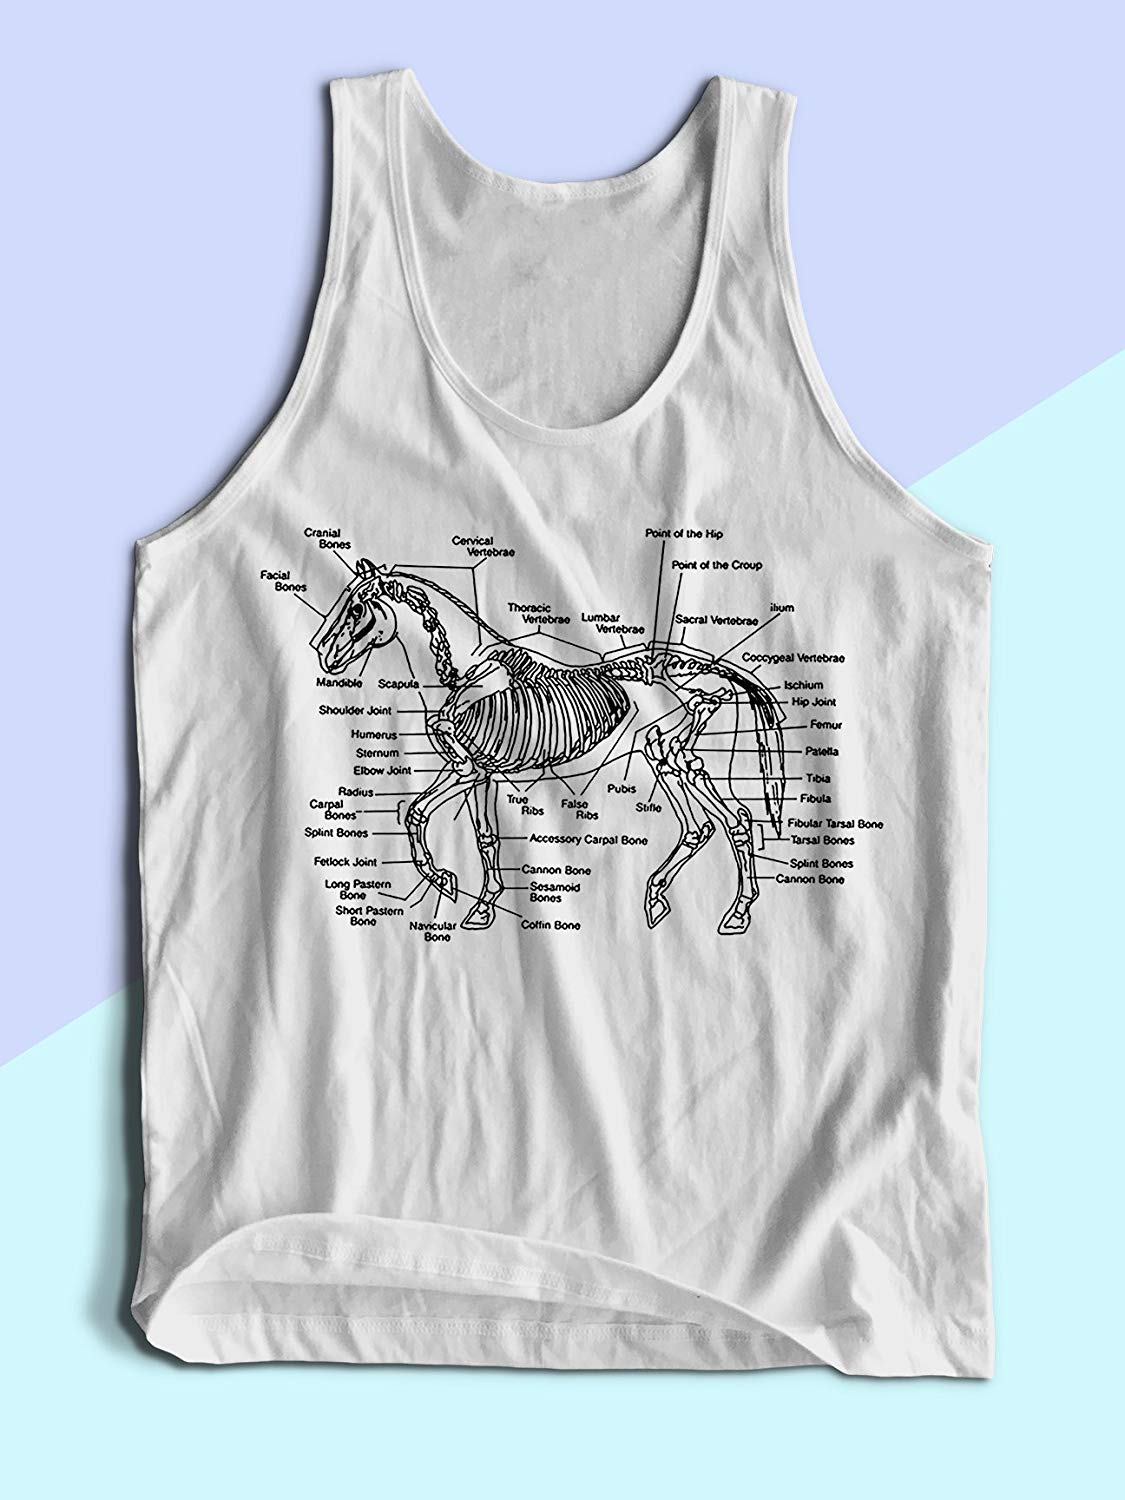 481c3327c ... Riding Horse Organic Cotton T Shirt. Get Quotations · Horse Anatomy  Tank Top - Mens Graphic Tank Tops - Tank Tops for Men - Horse